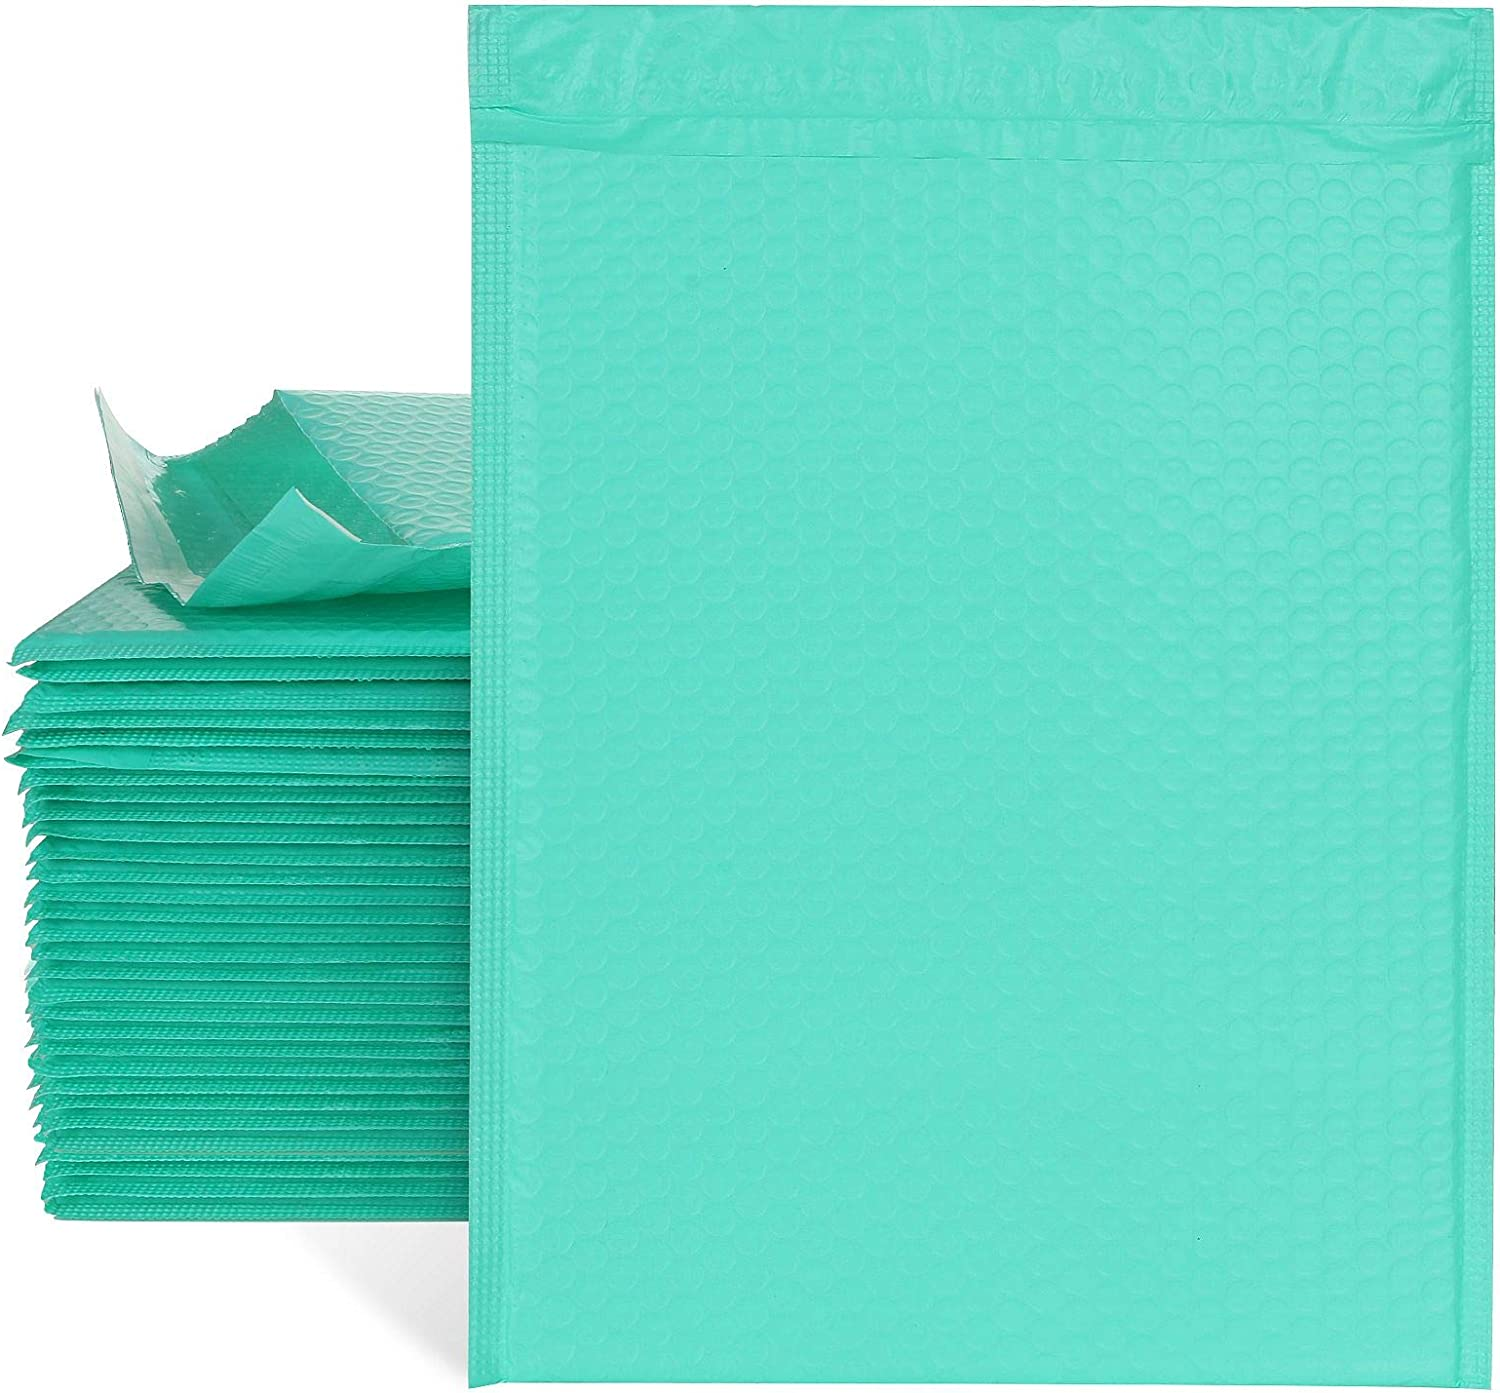 30pcs 10.5x16 Inch Poly Bubble Teal Boston Mall #5 Ranking TOP18 Padded Mailers Envelopes